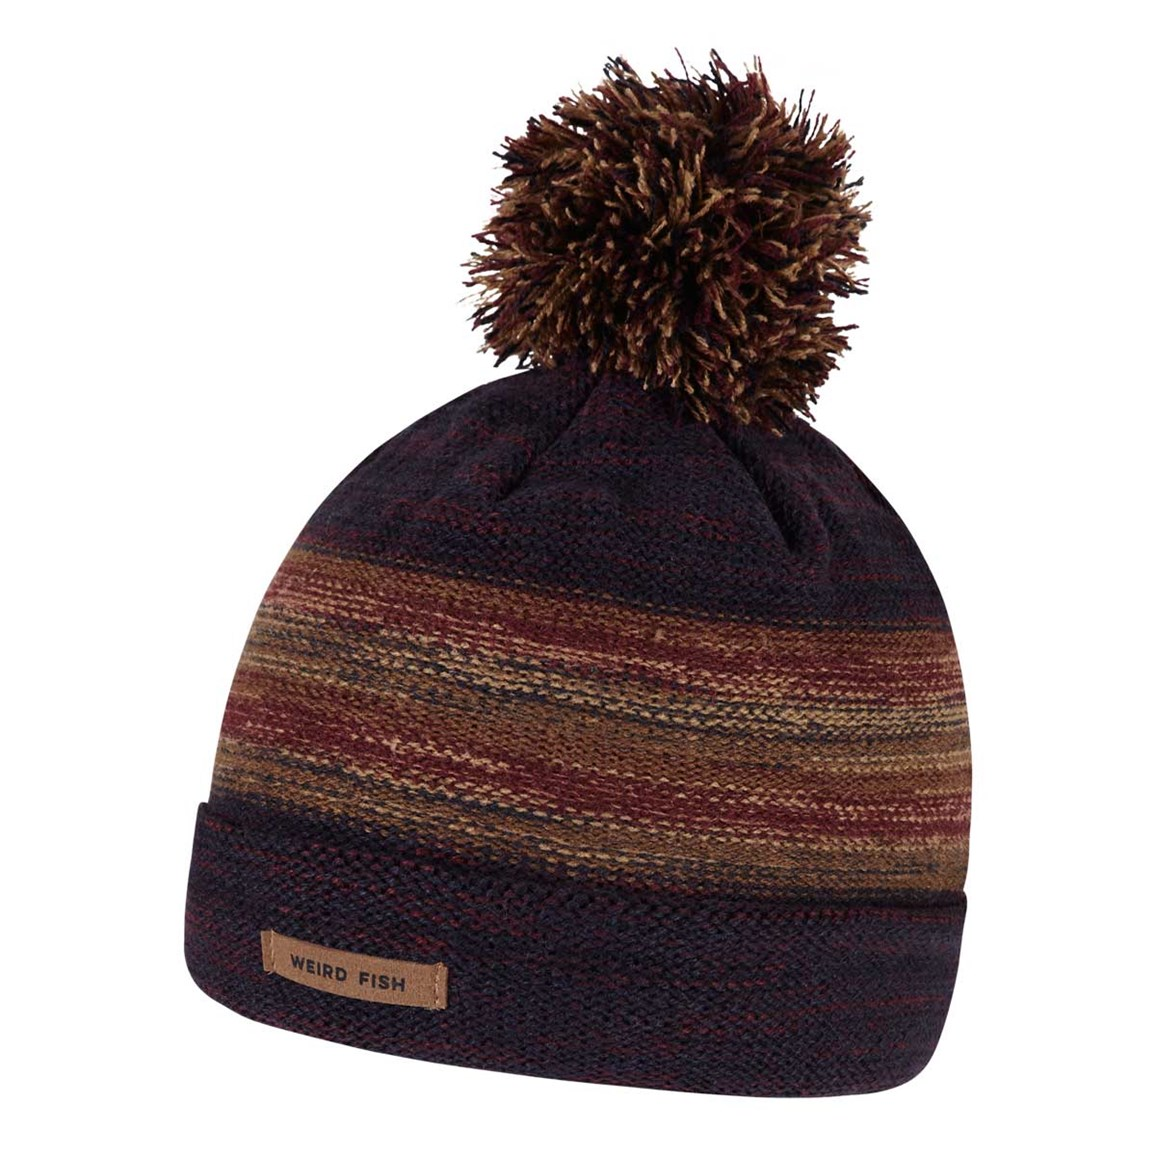 Weird Fish Powderhorn Bobble Hat Mulled Wine